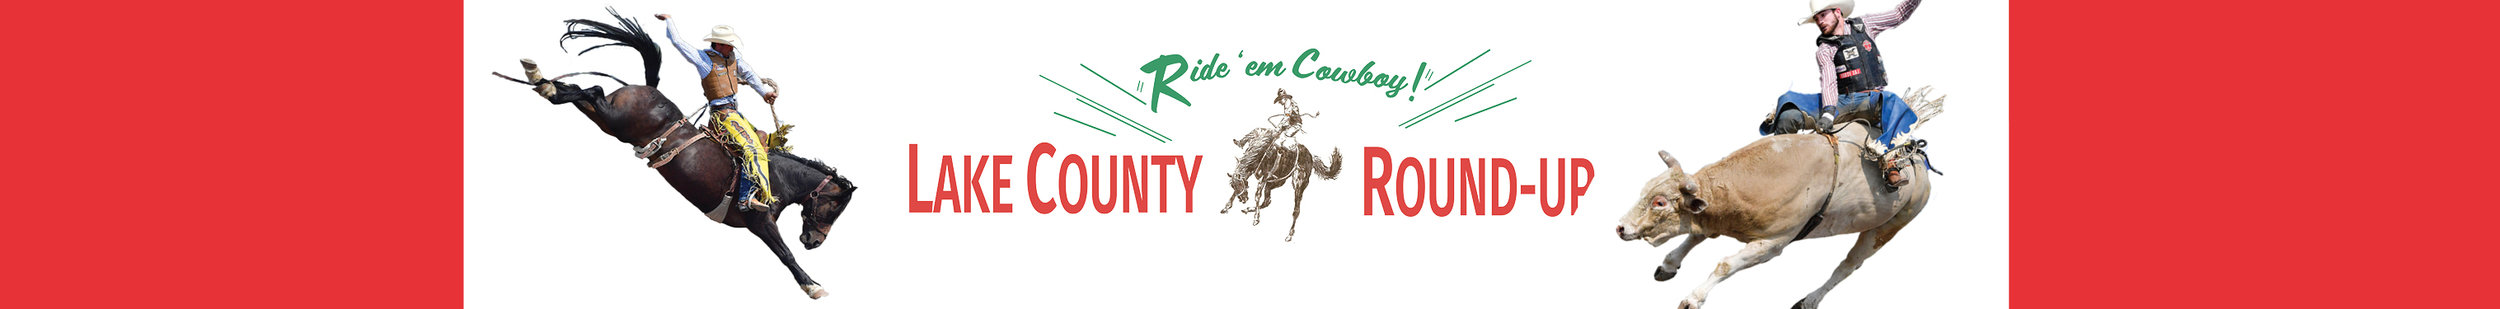 Lake County Round Up Directory Cover-.jpg